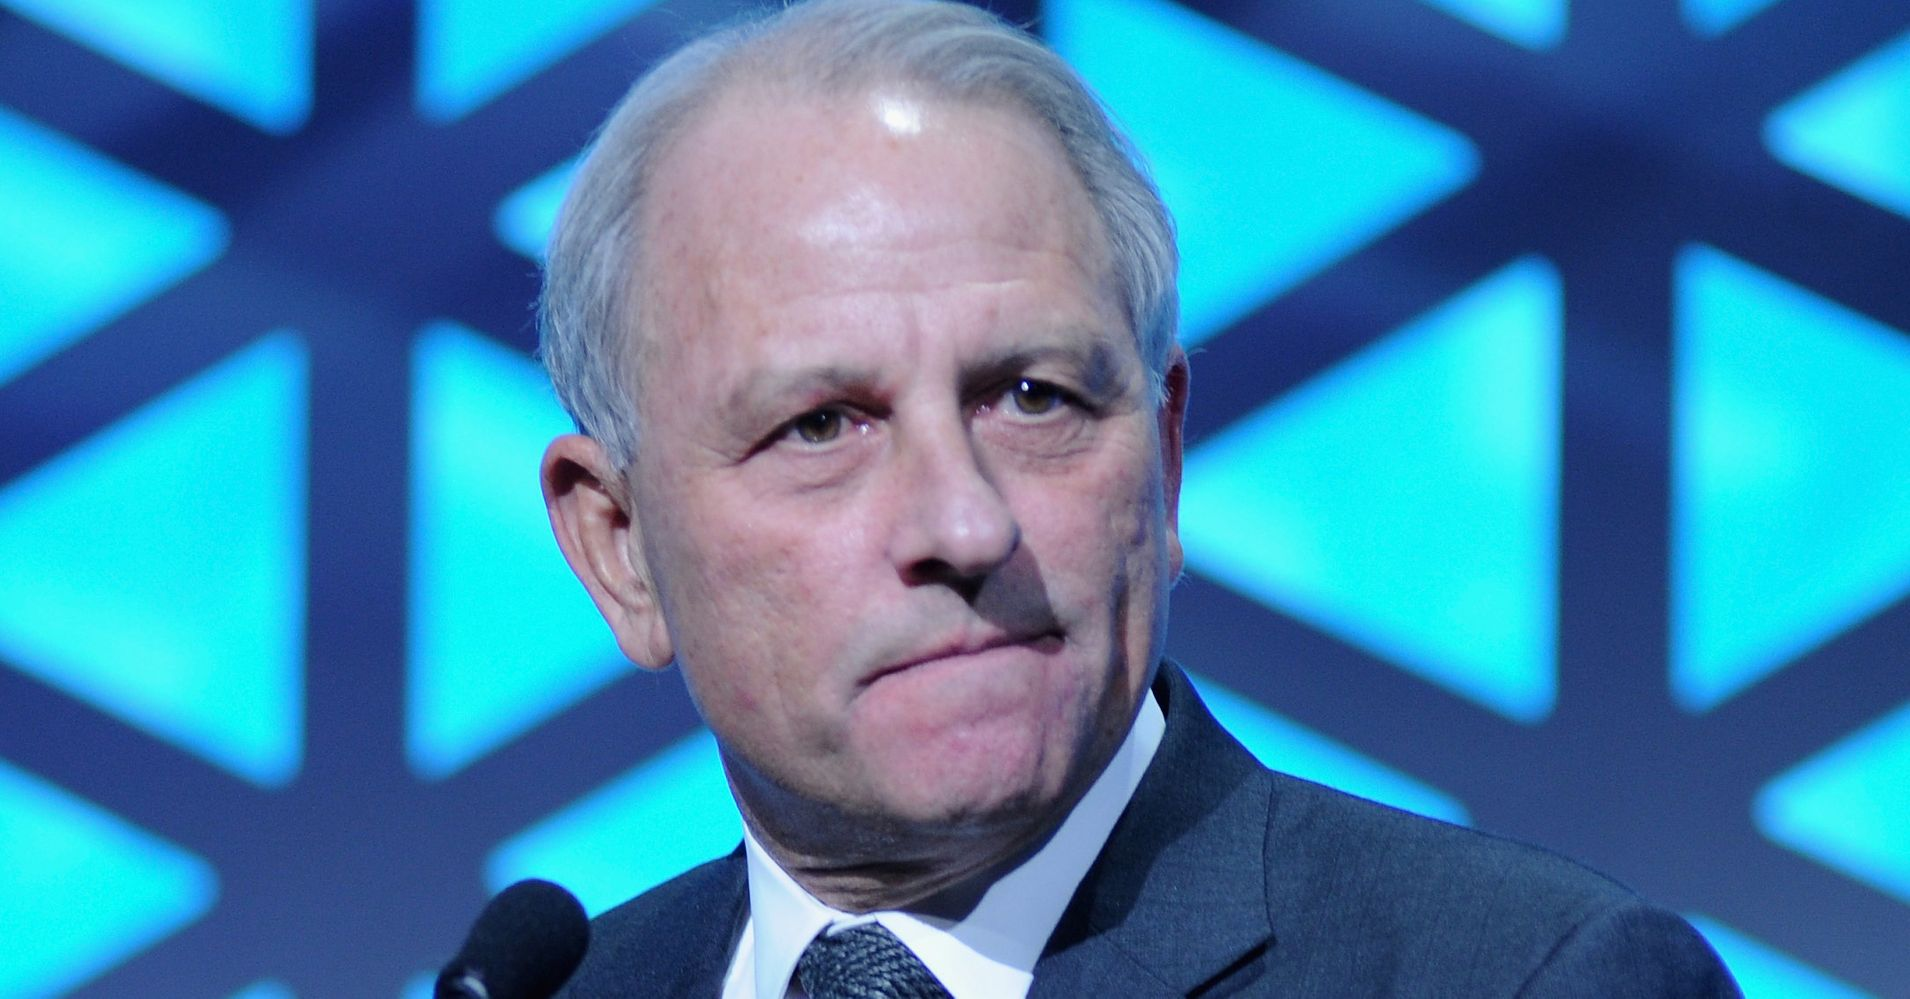 '60 Minutes' Chief Jeff Fager Ousted Amid Allegations Of Inappropriate Conduct